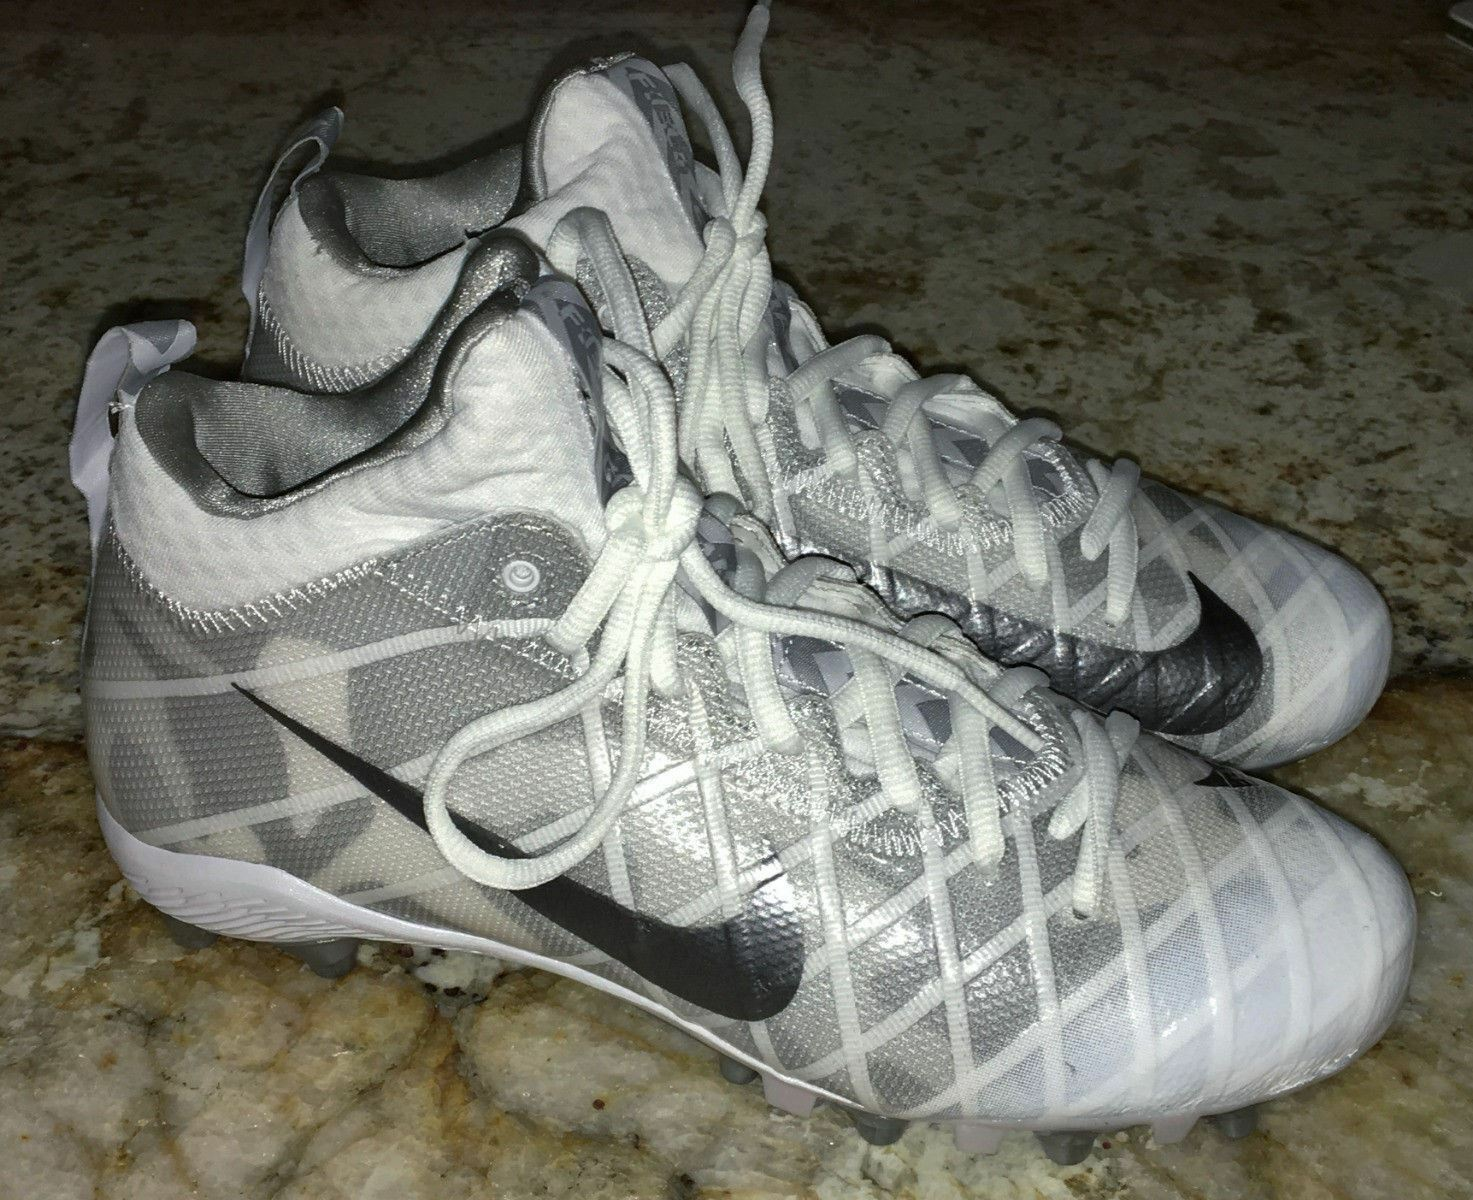 NIKE Alpha Field General Elite Camo White Grey TD Football Cleats 9.5 10.5 11 16